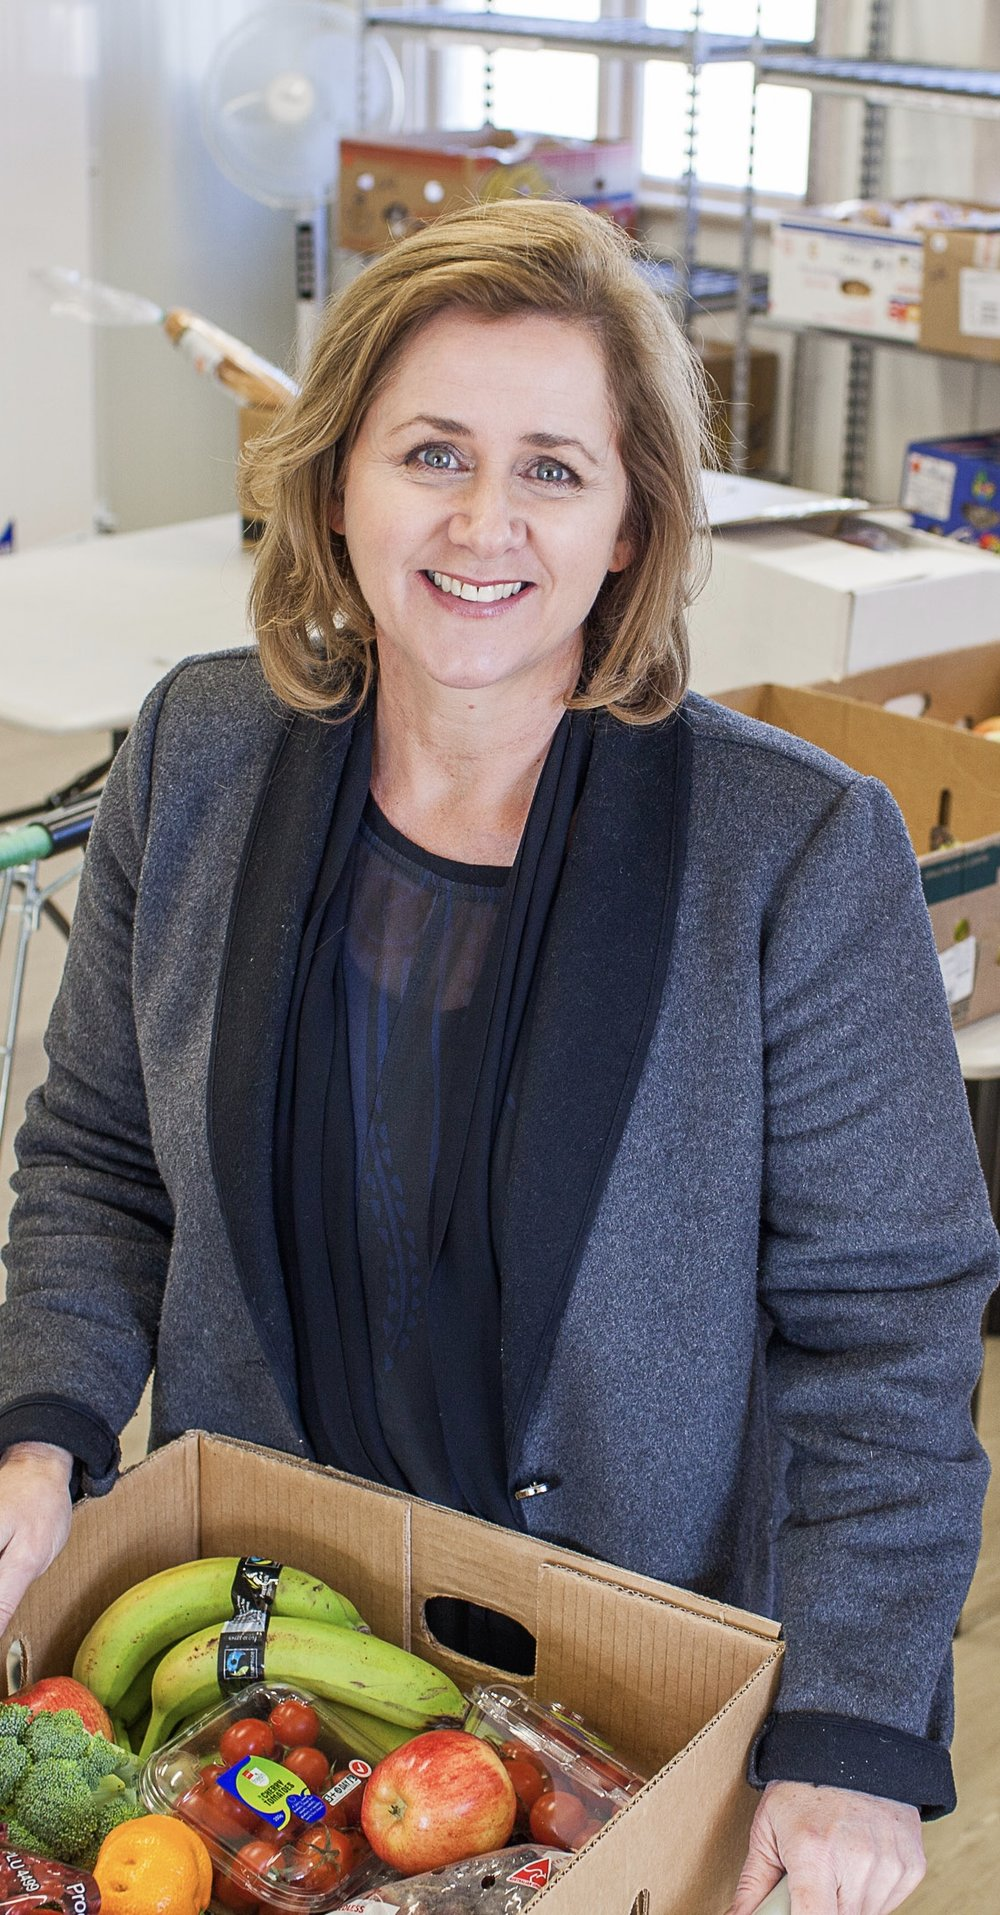 1 June 2016: Foodshare. Deborah Manning CEO of Foodshare in the Dunedin Foodshare base where volunteers sort boxes of food. Photo Sharron Bennett